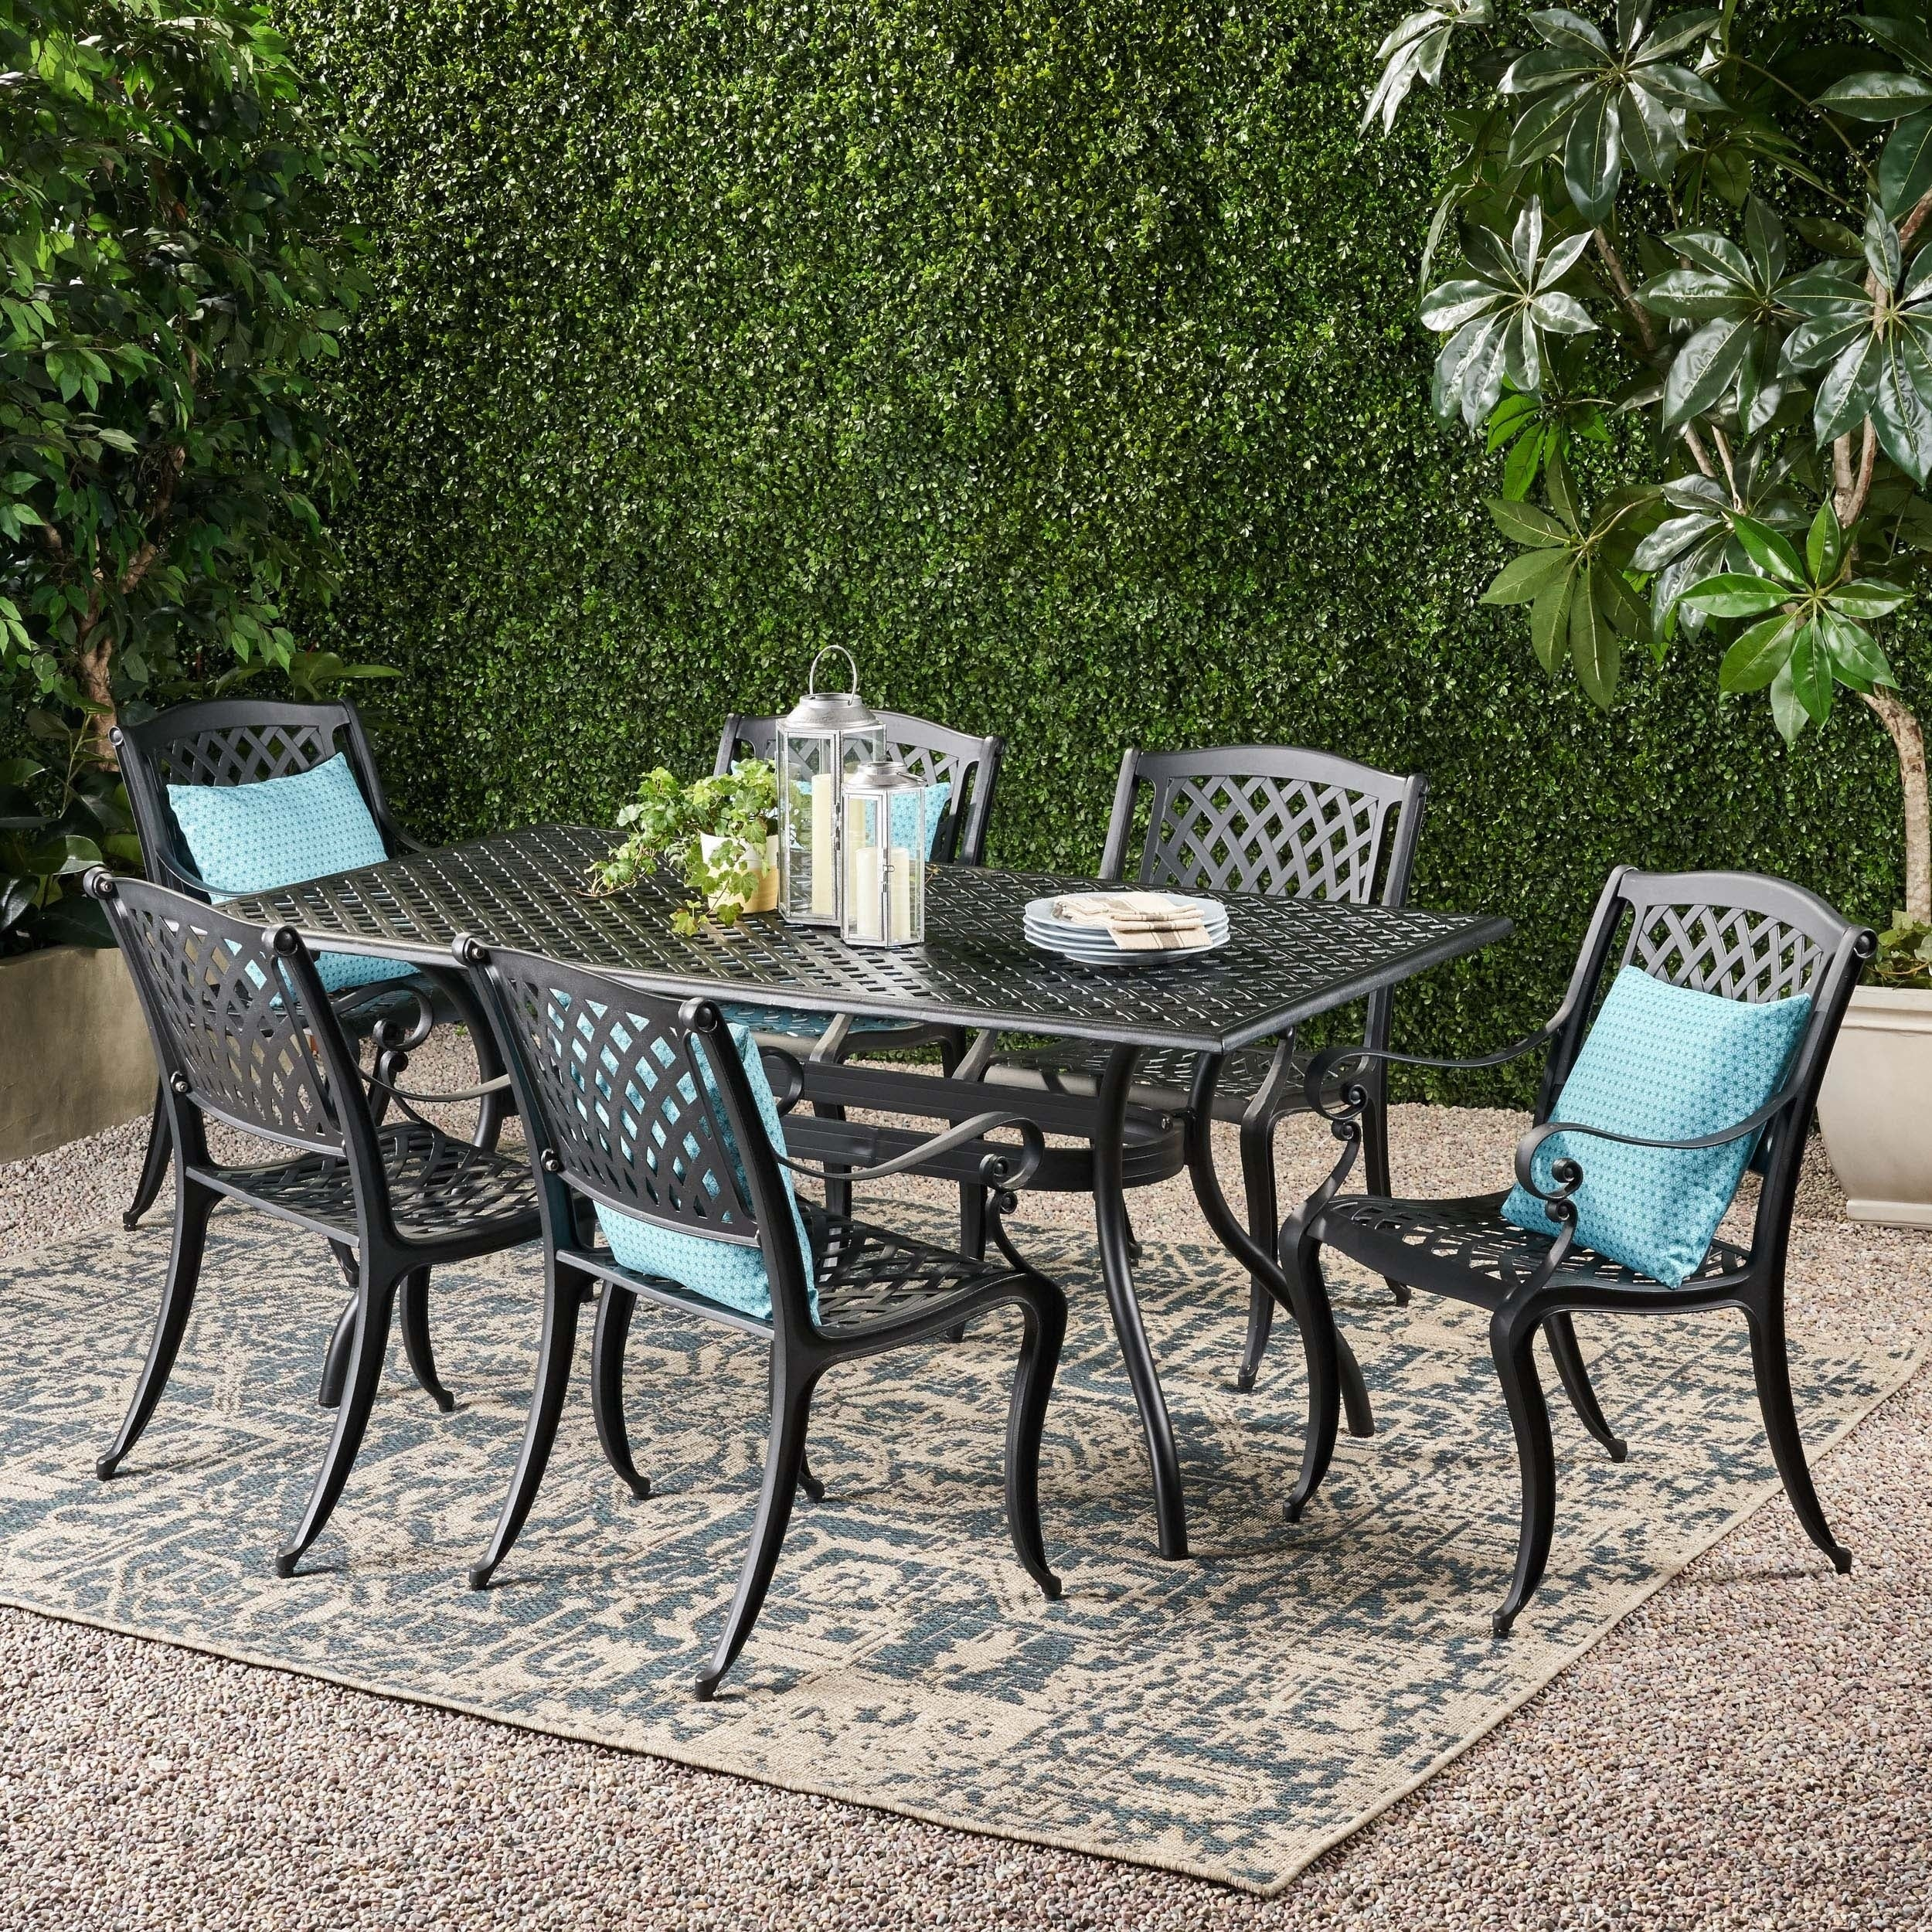 Aluminum patio furniture find great outdoor seating dining deals shopping at overstock